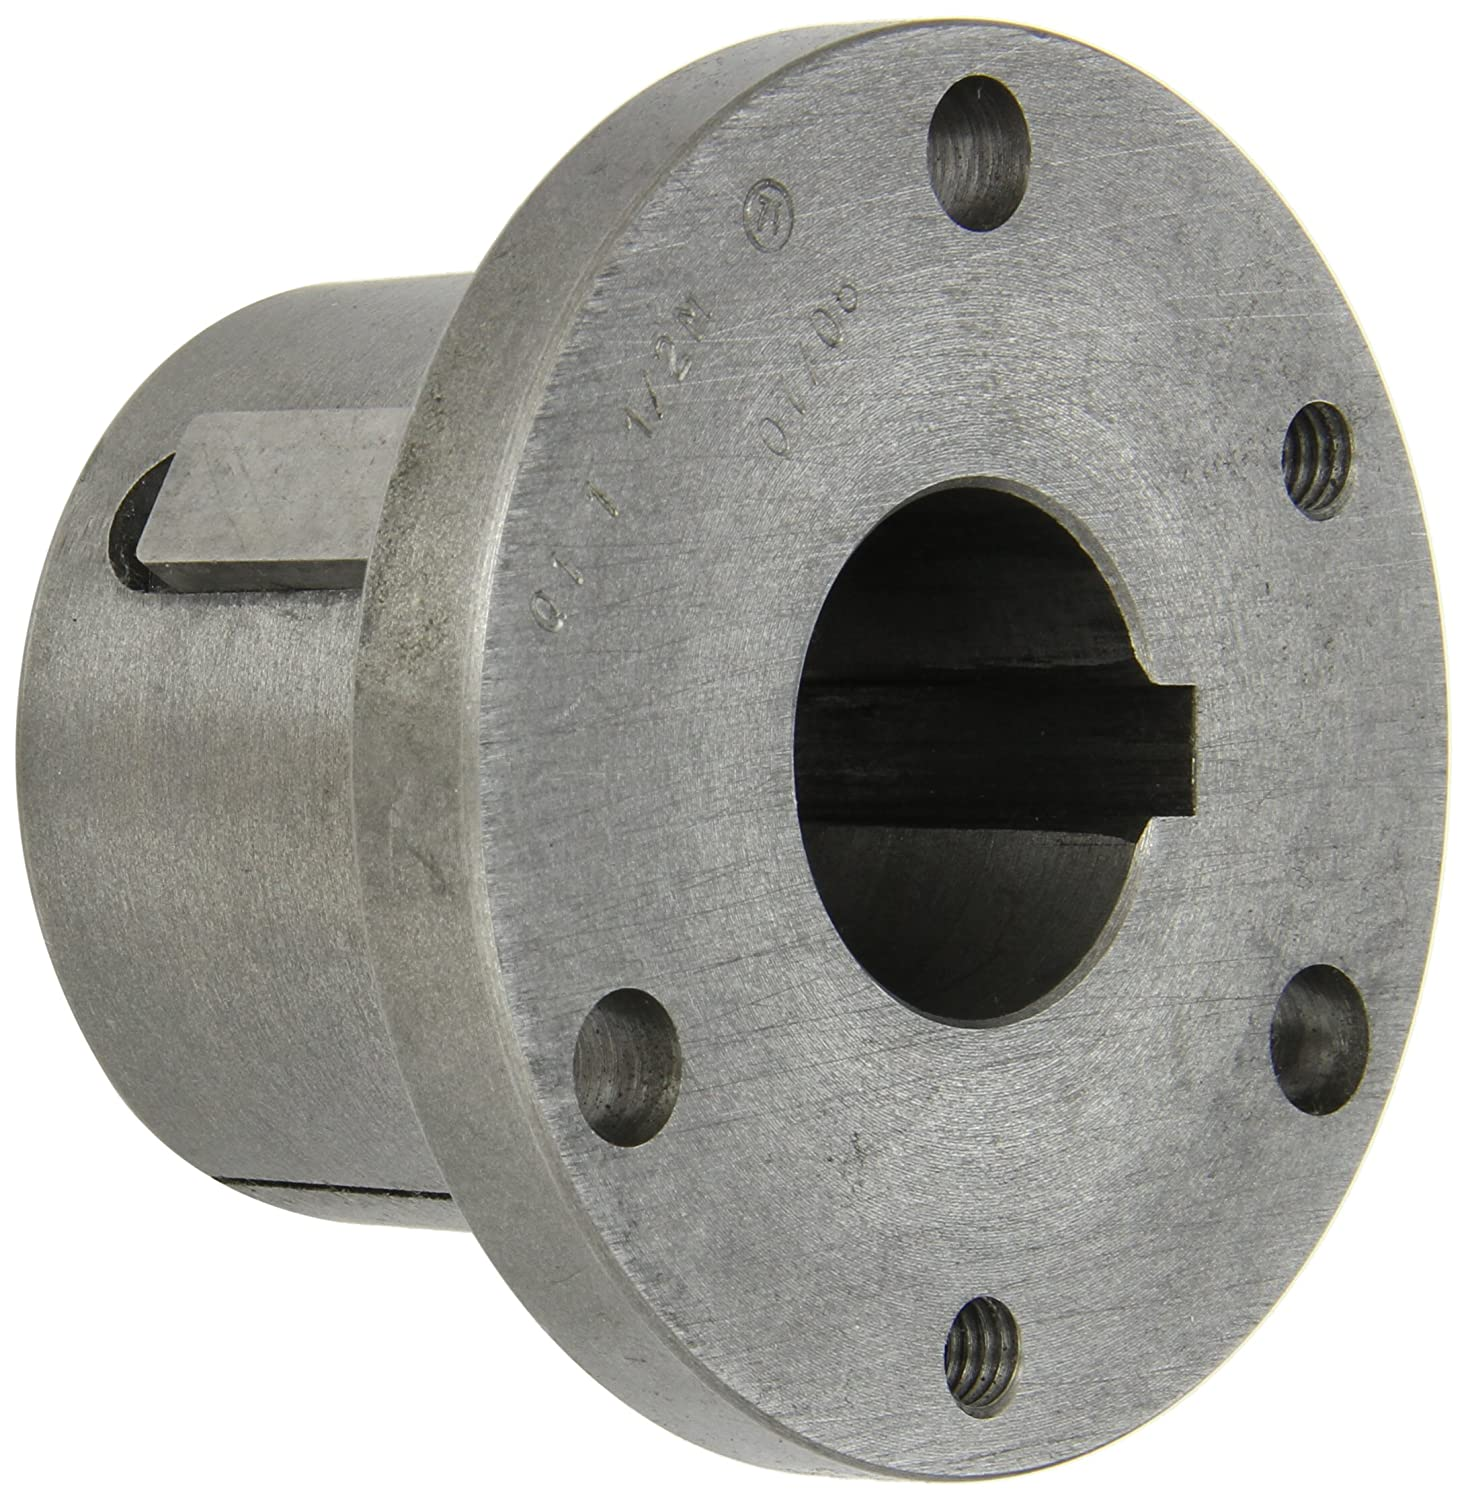 VXB Brand Japan MJC-30CSK-EBL 1//2 inch to 9//16 inch Jaw-Type Flexible Coupling Coupling Bore 2 Diameter:9//16 inch Coupling Length 35 Coupling Outer Diameter:30